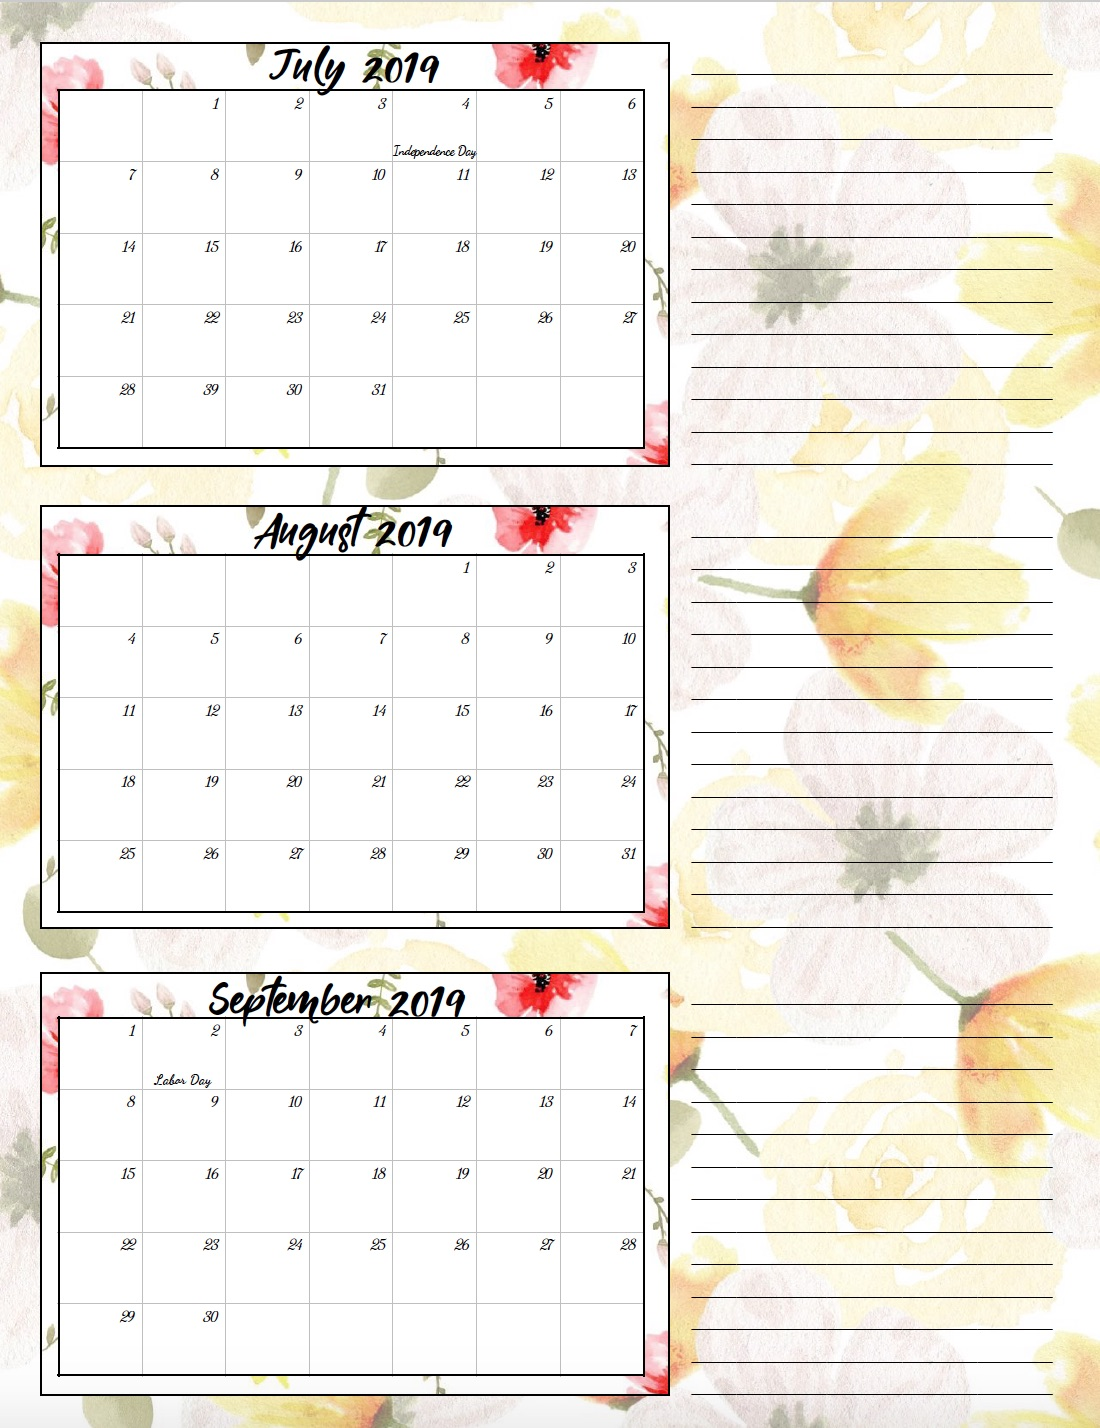 July-Sept. 2019. Free Printable 2019 Quarterly Calendars with Holidays: 3 Designs. Holiday theme, bright and floral theme, and classic elegant theme- choose which works for you! #free #printable #freeprintable #calendars #2019calendars